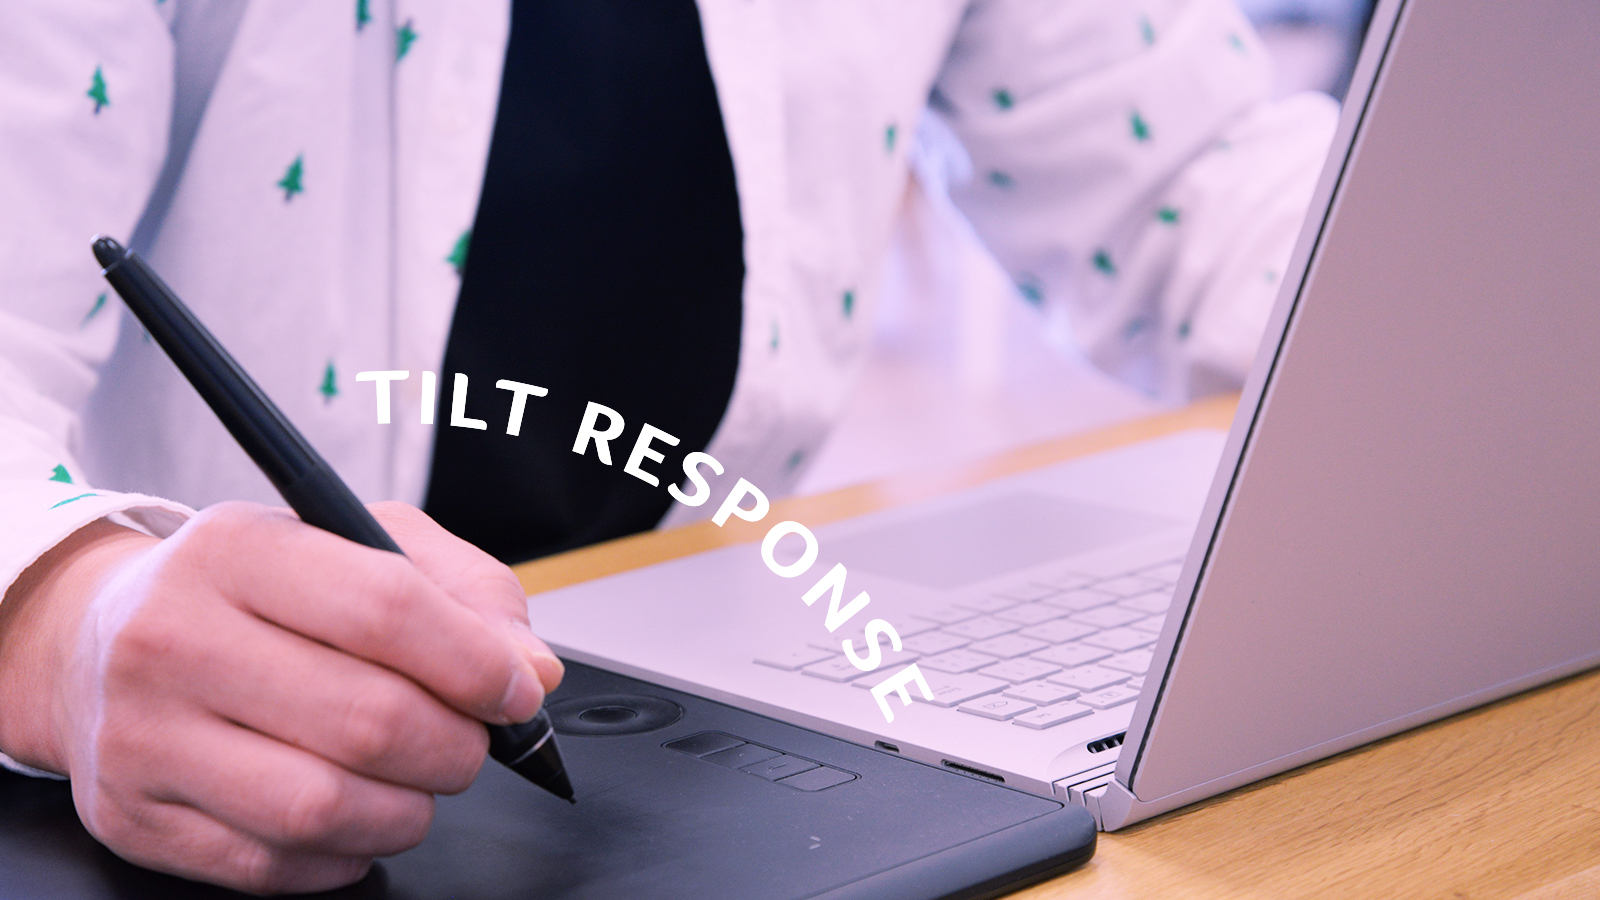 6 BEST DRAWING GRAPHIC TABLETS WITH TILT RESPONSE